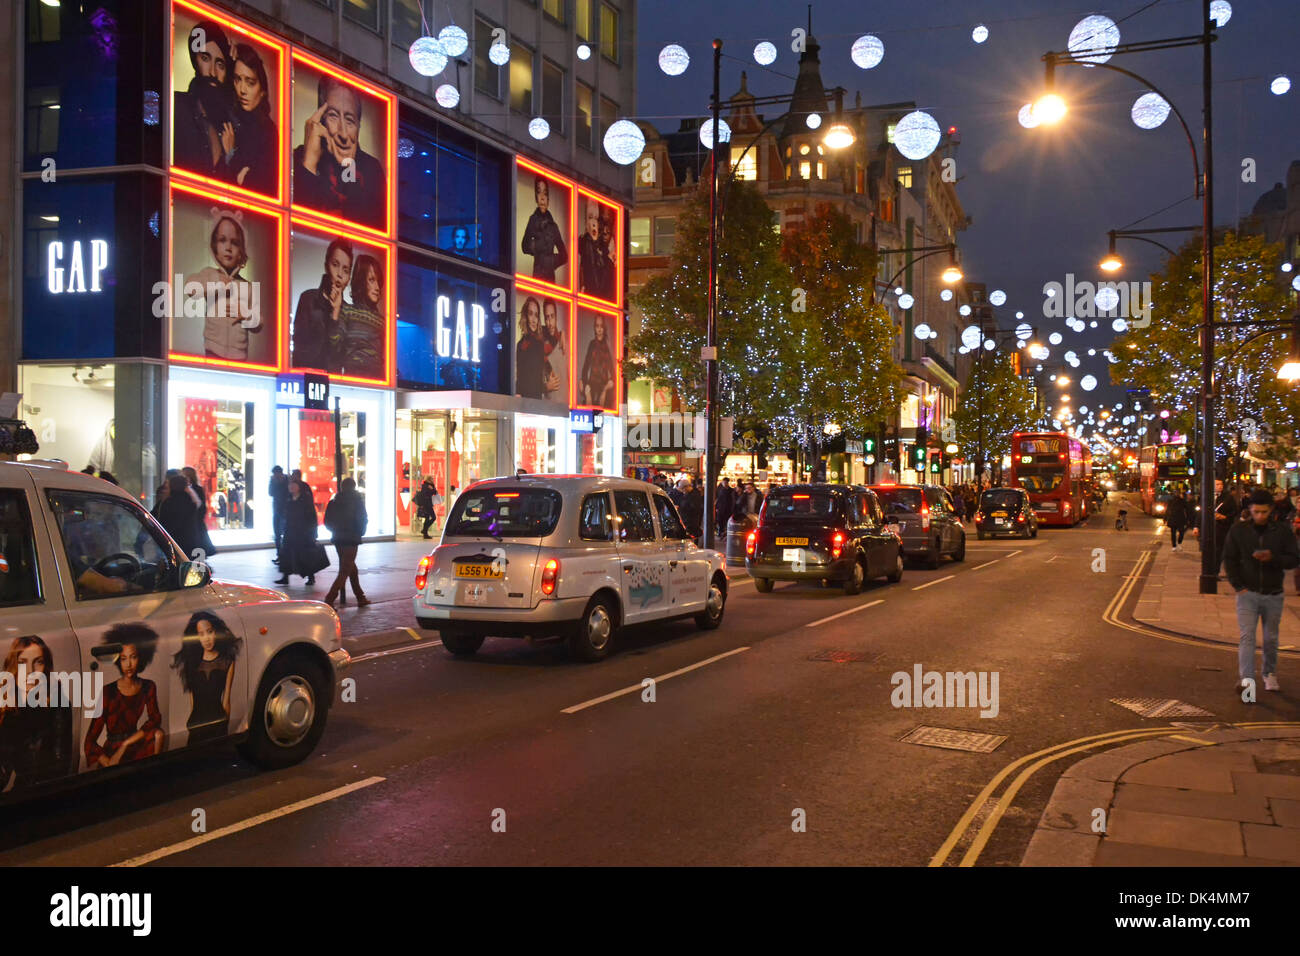 London taxis queuing in Oxford Street below Christmas decorations - Stock Image